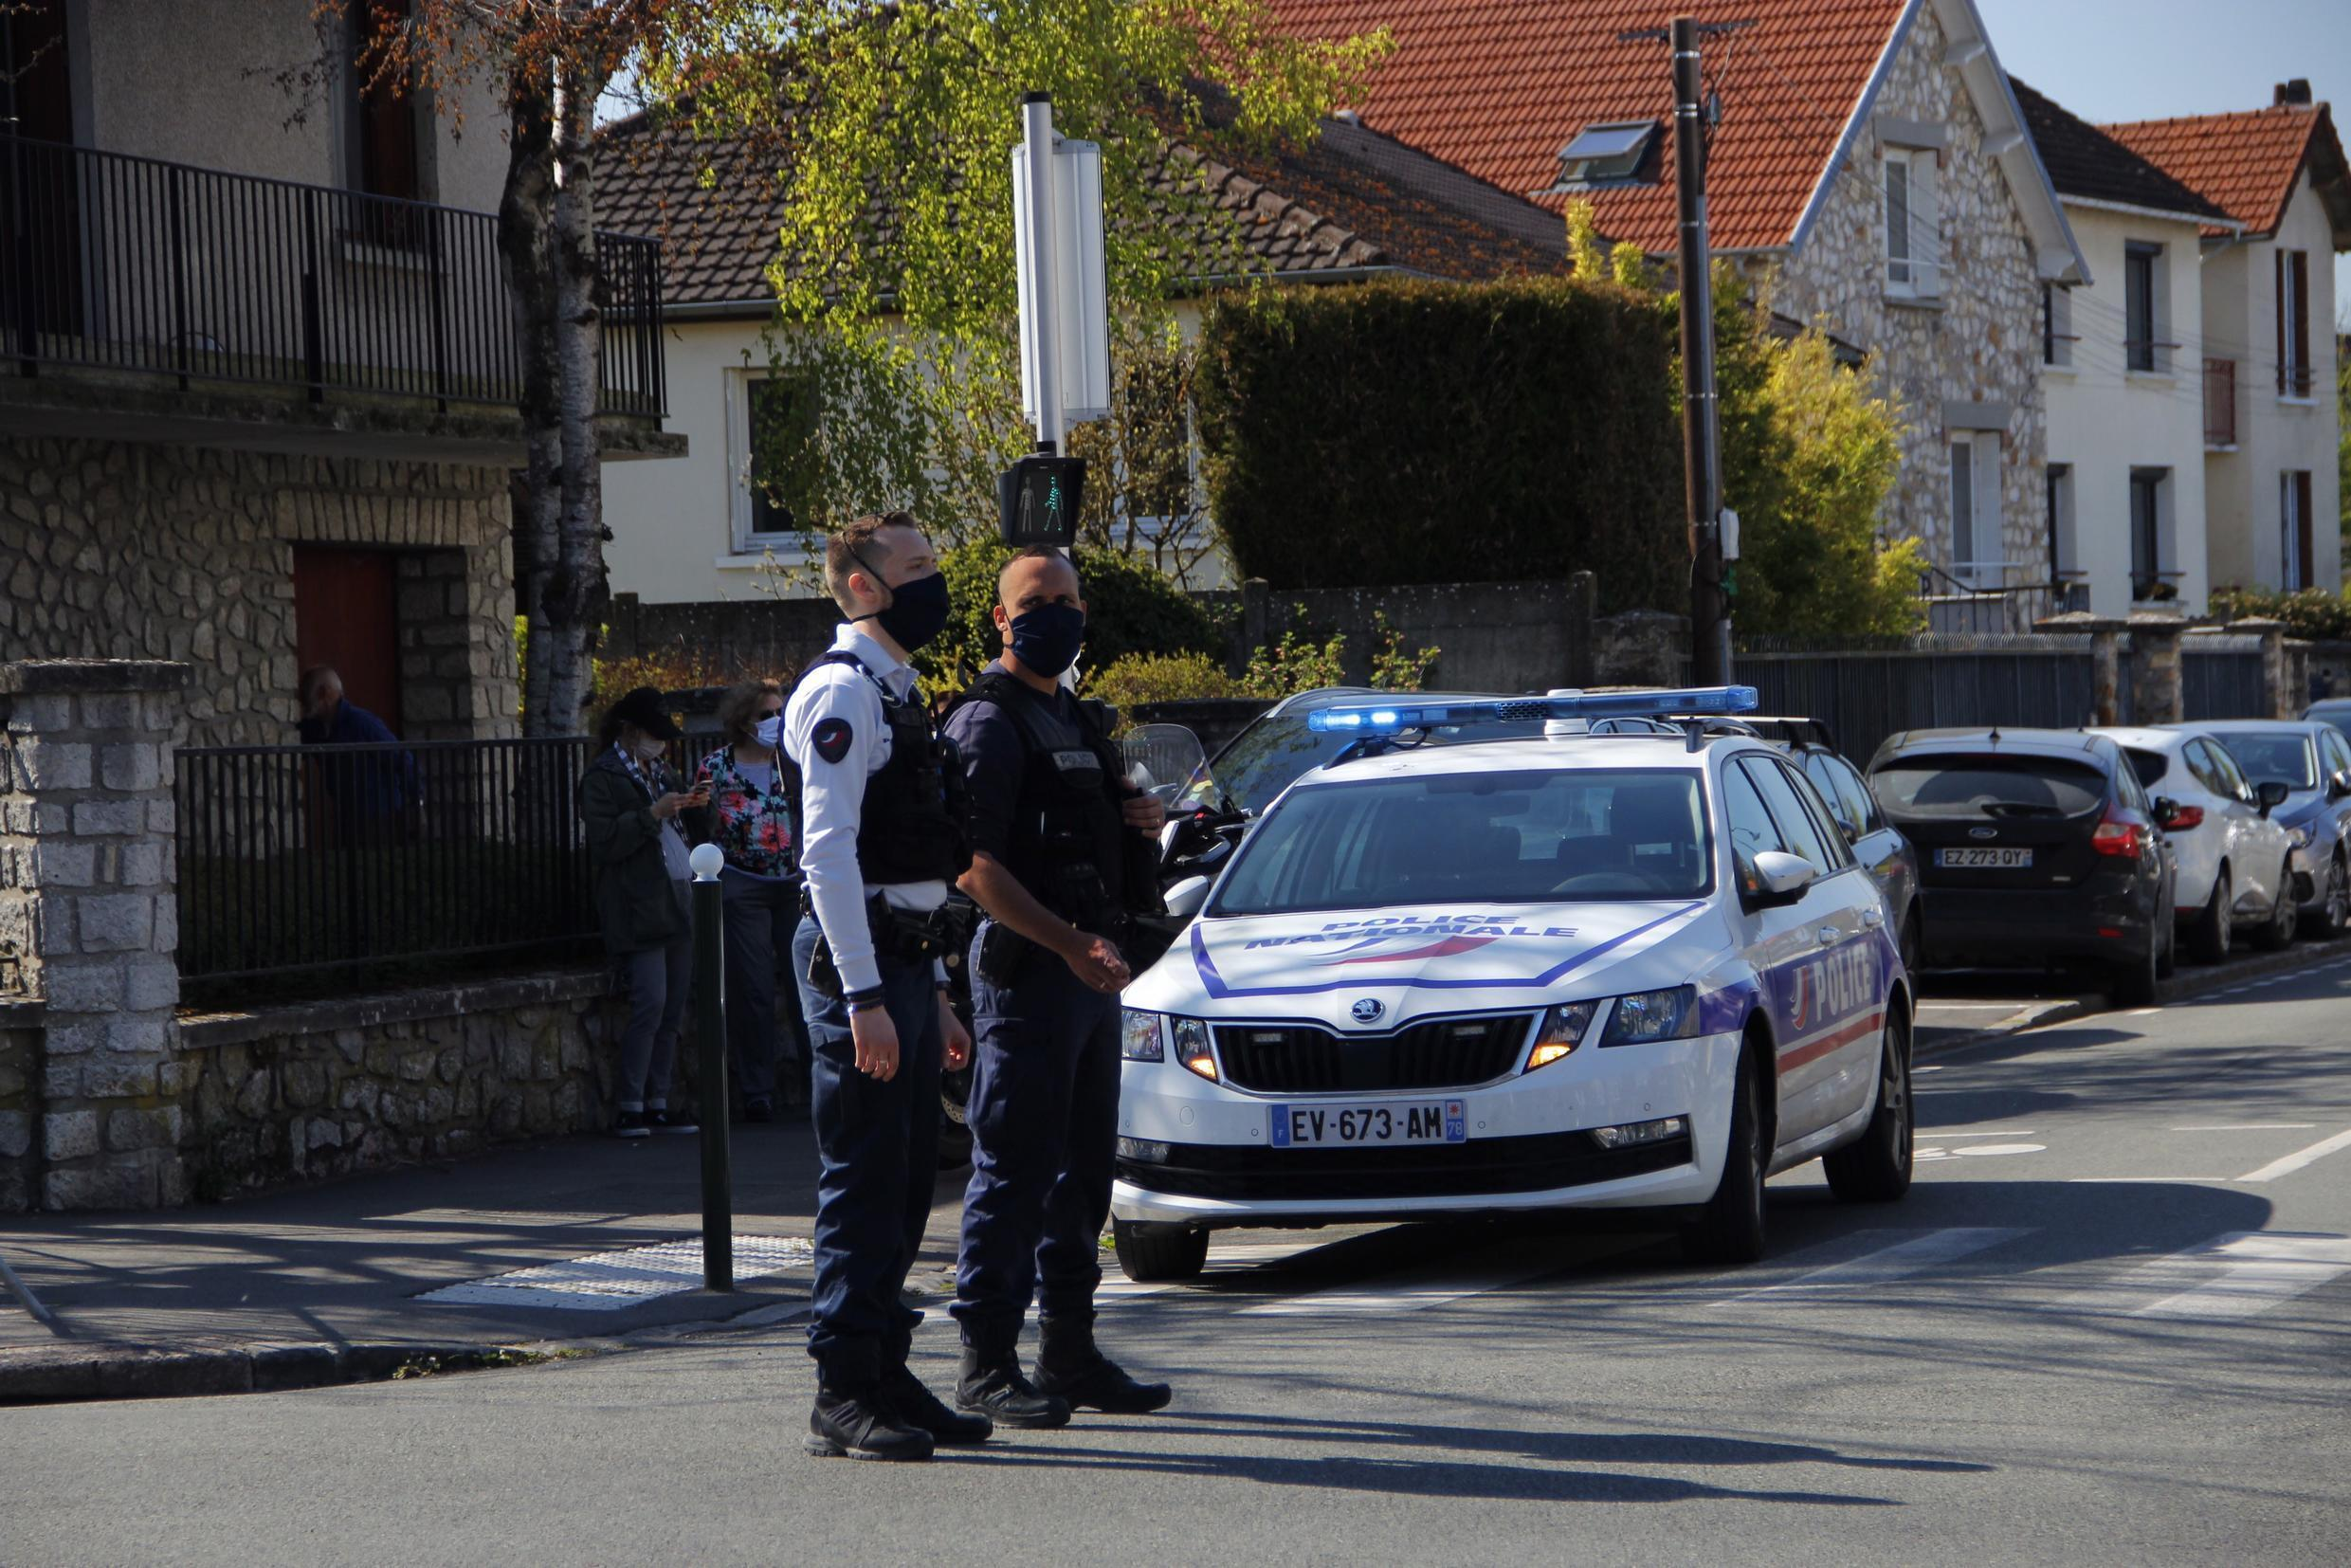 French police in Rambouillet, just outside of Paris, where a policewoman was fatally stabbed on April 23, 2021.